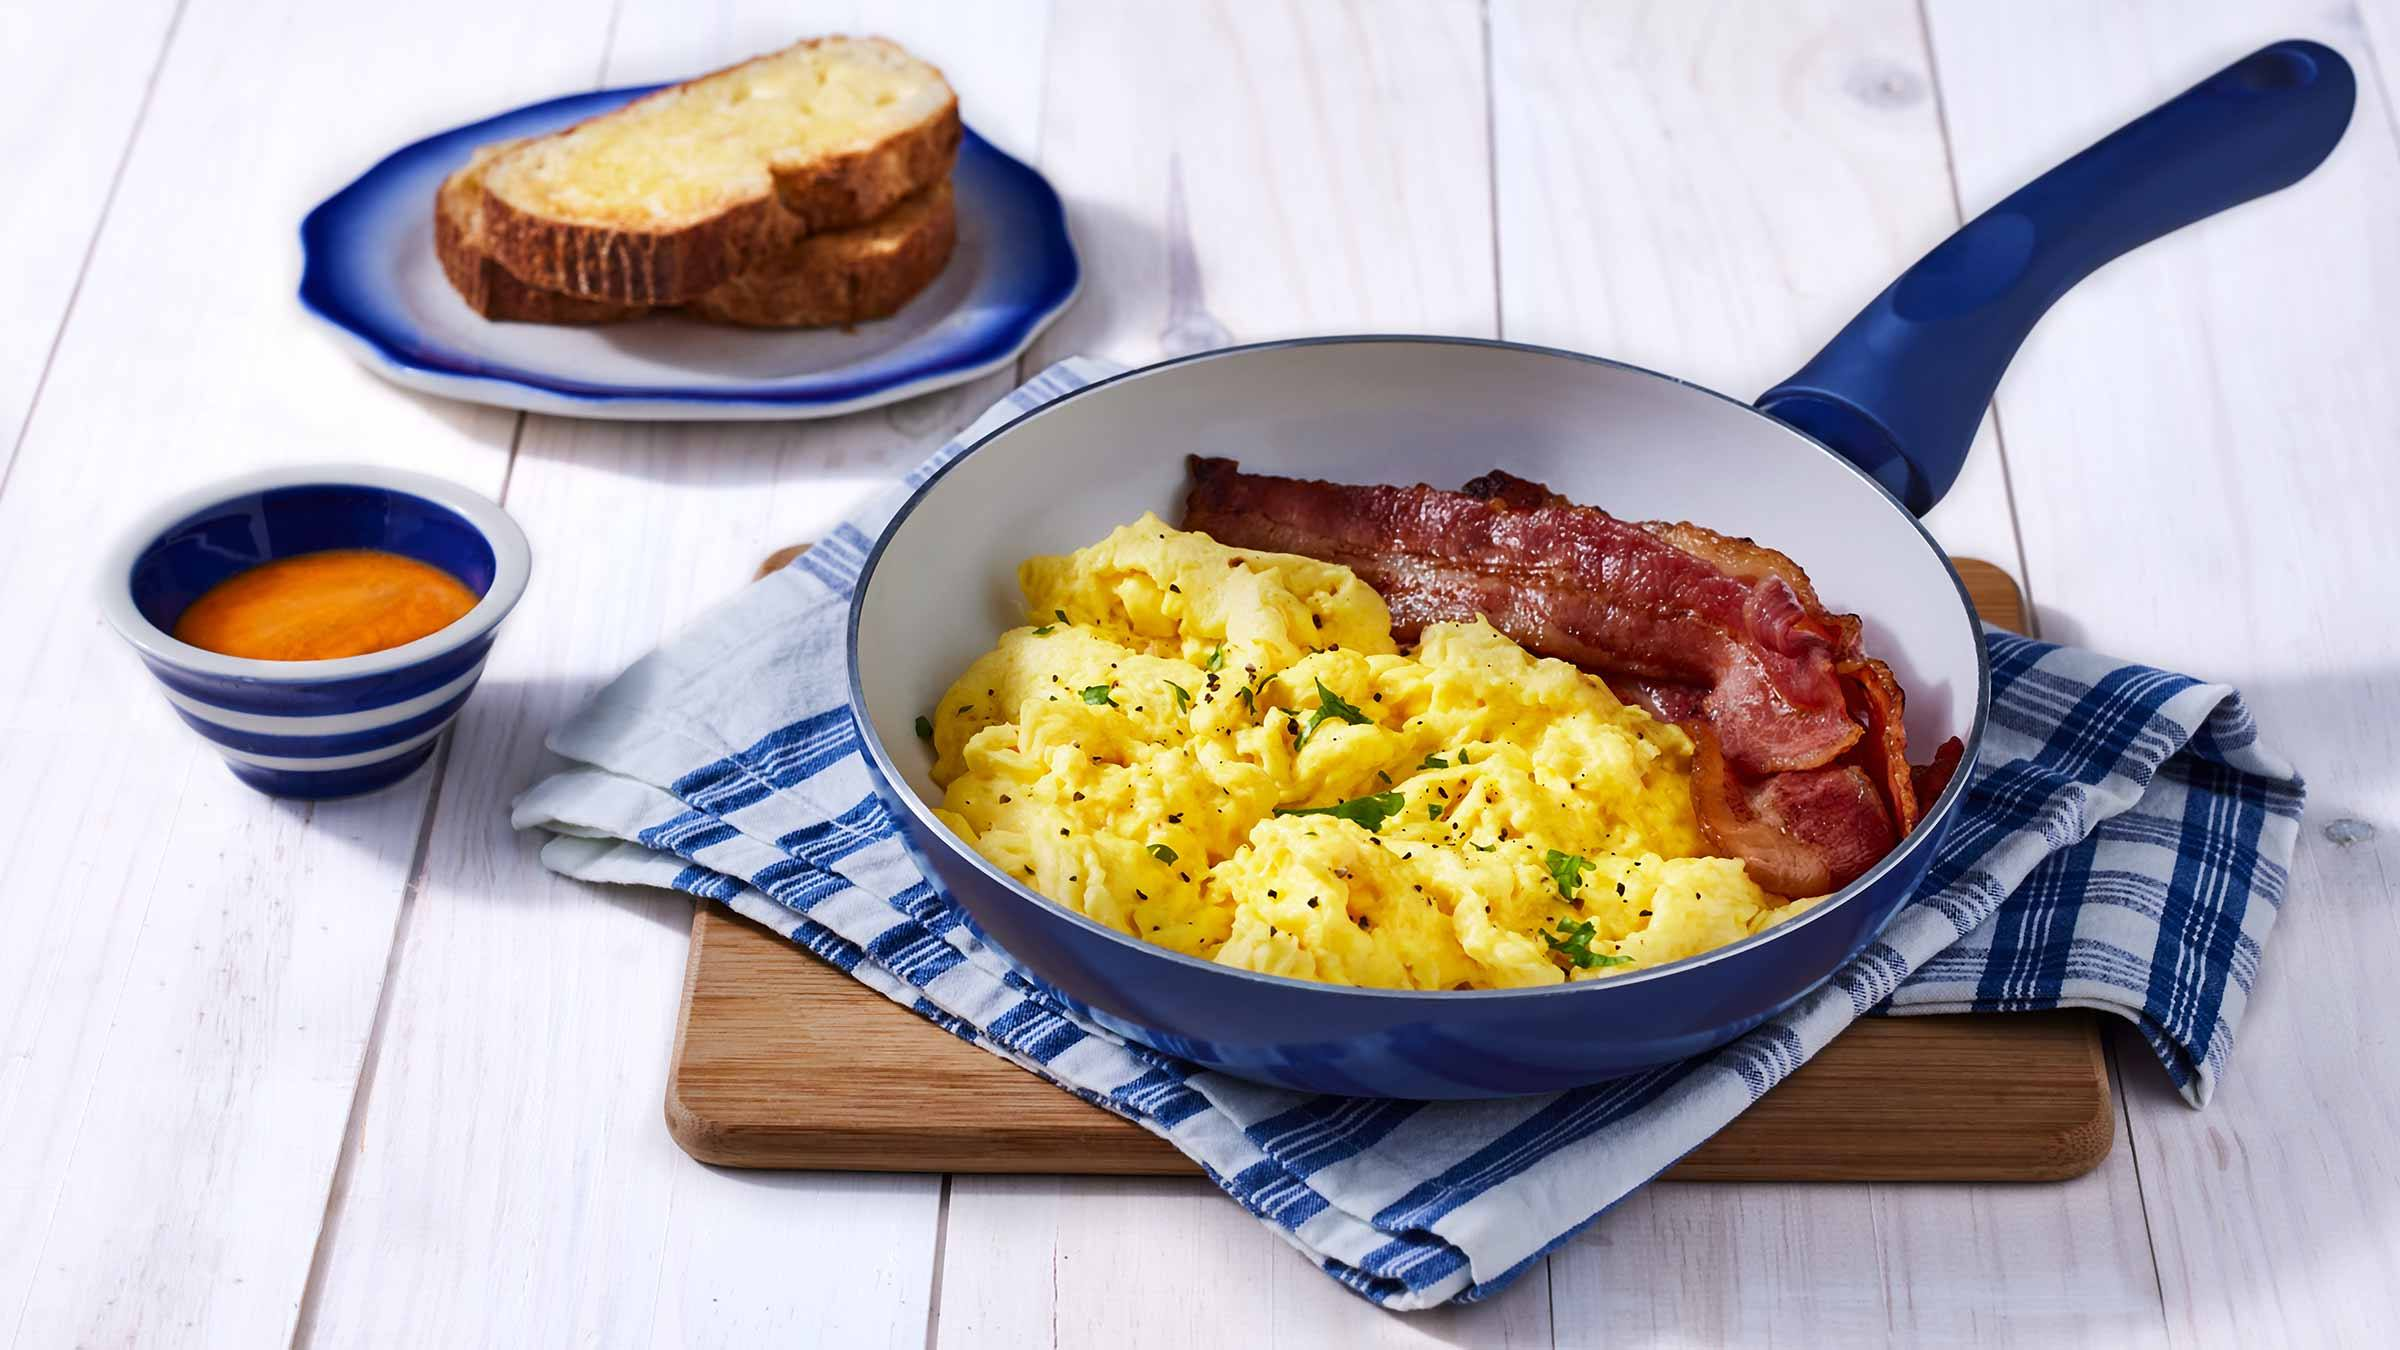 Tender and Fluffy Scrambled Eggs Recipe